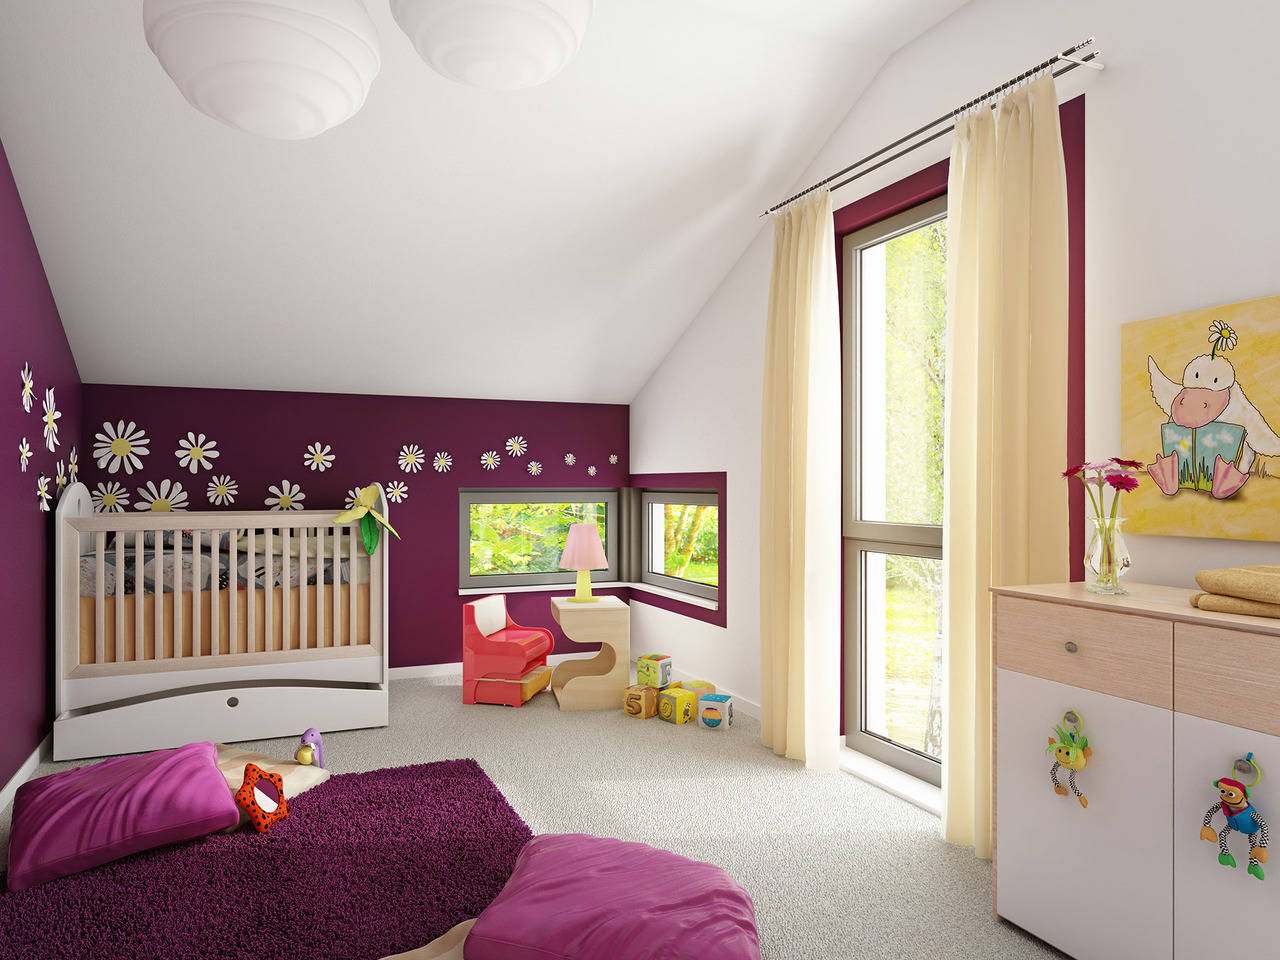 Haus SOLUTION 204 V10 Kinderzimmer von Living Haus